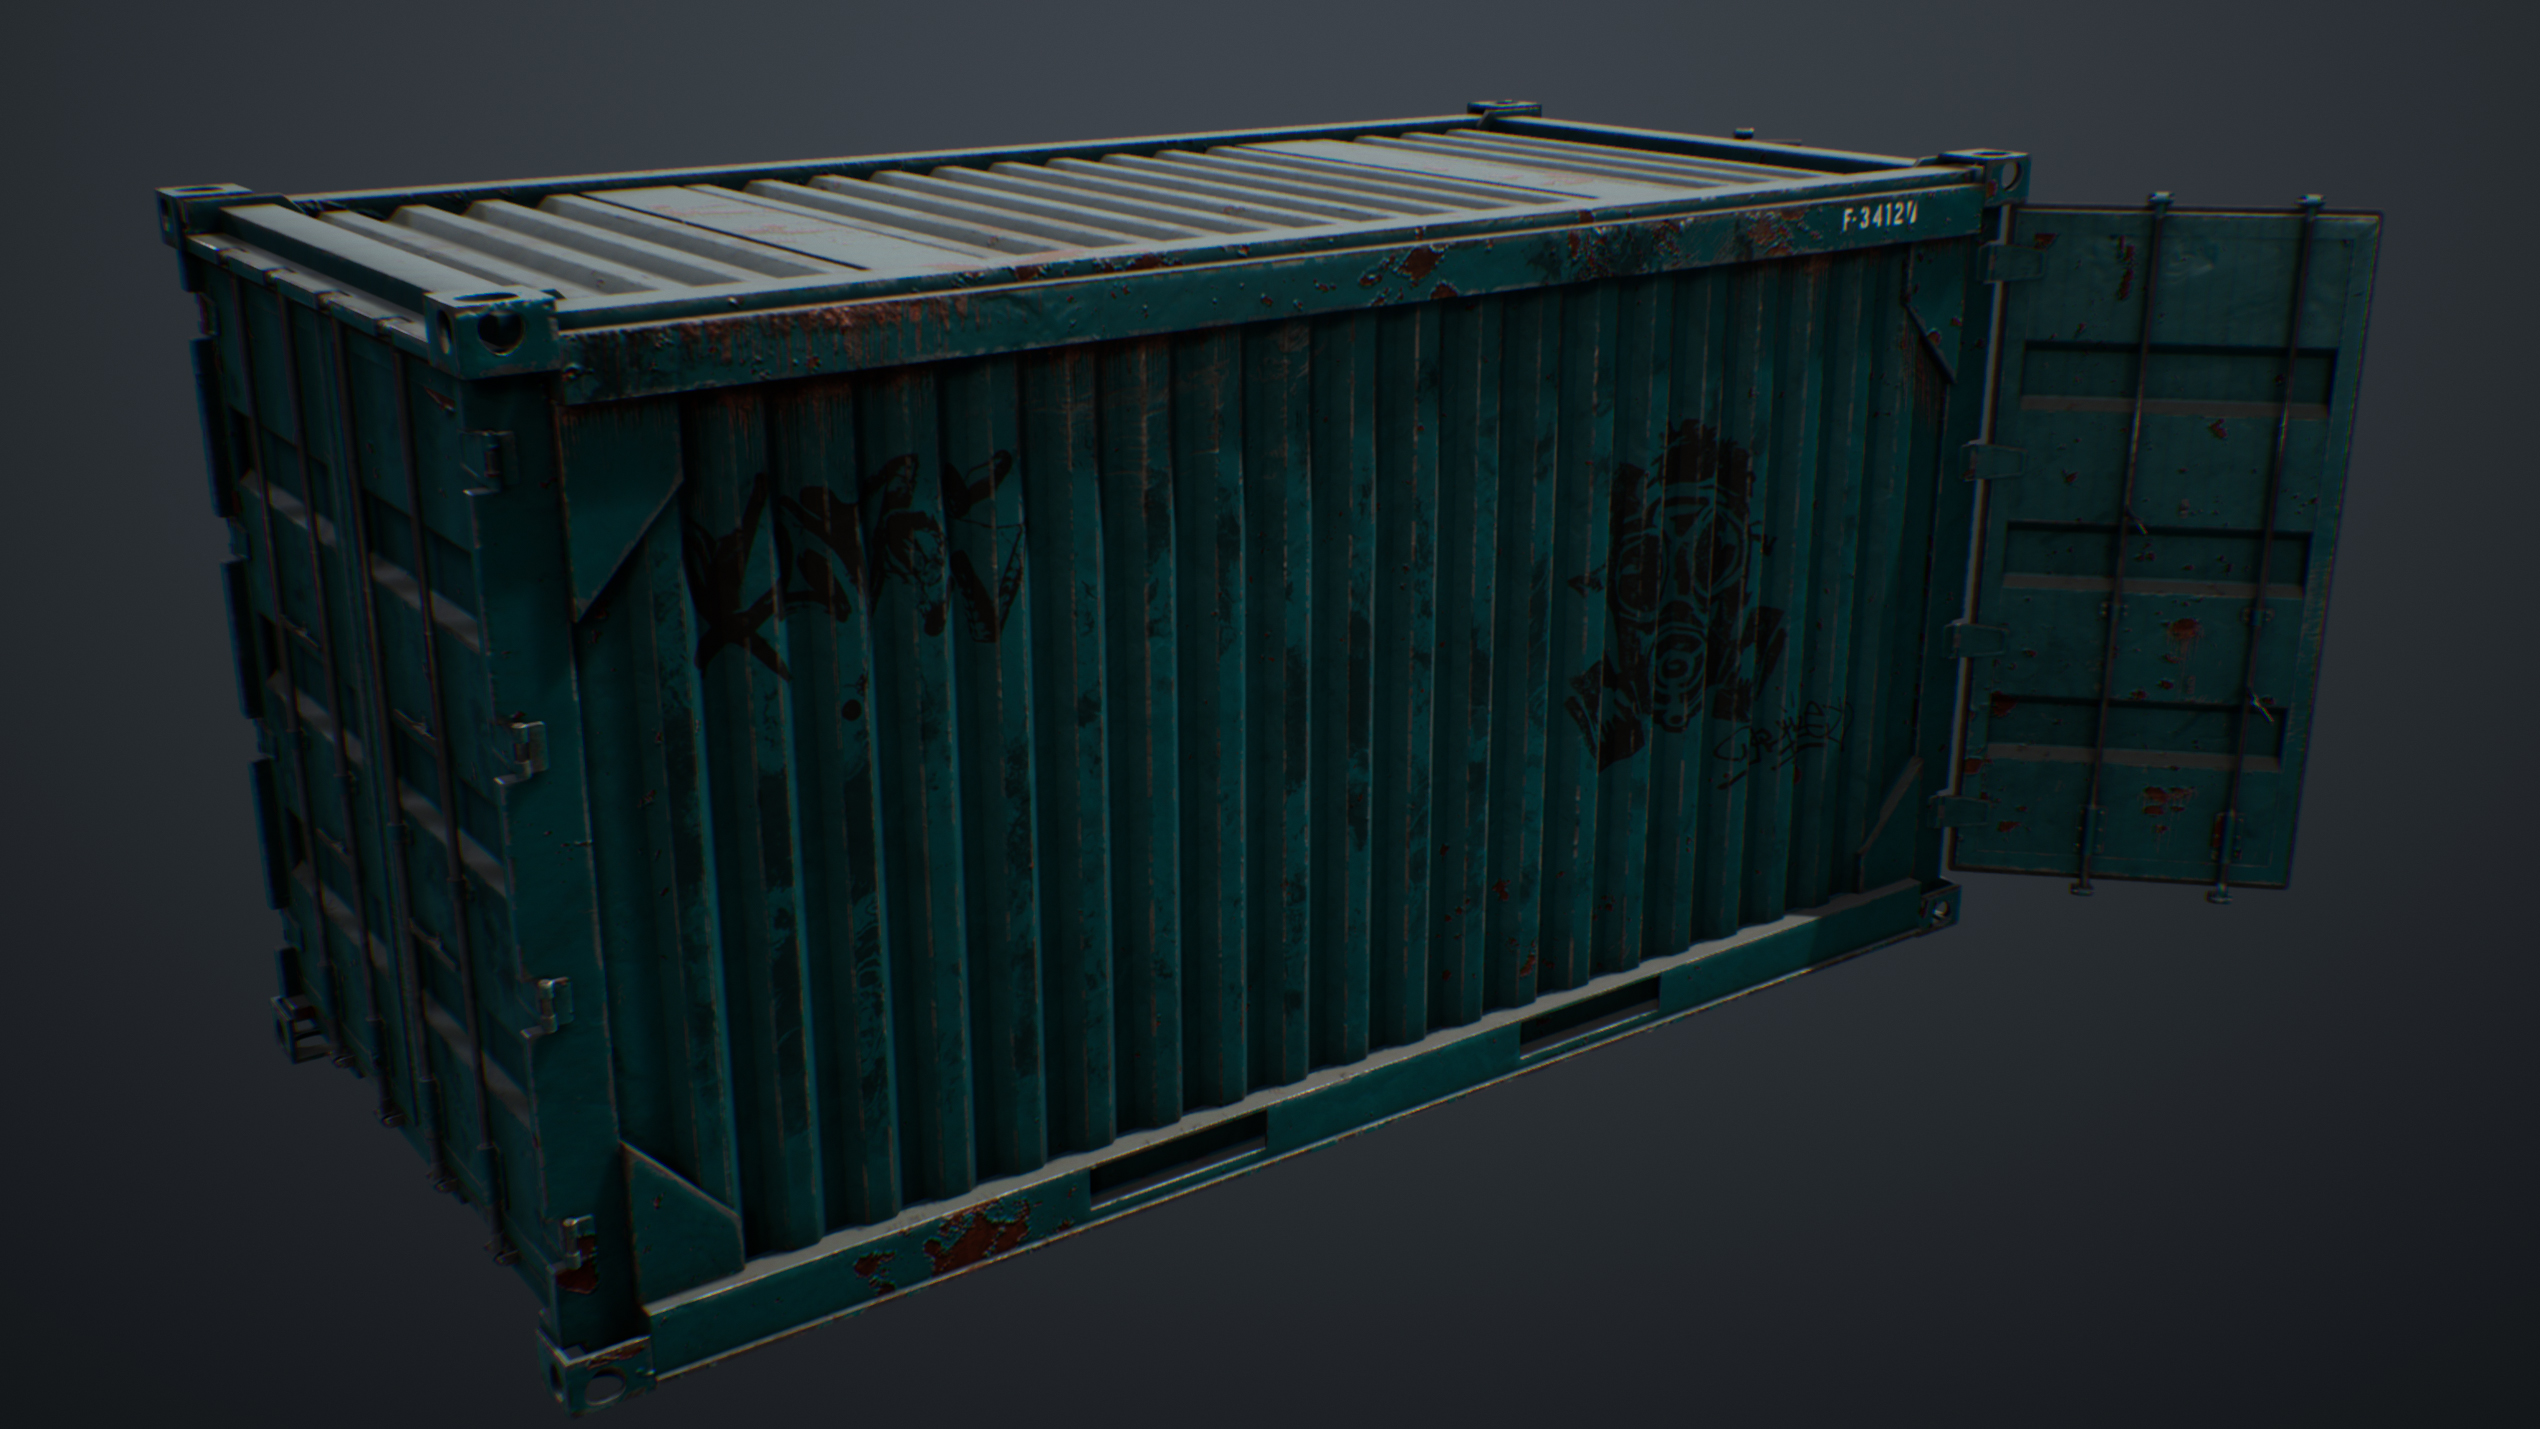 UE4 screenshot of the container back view